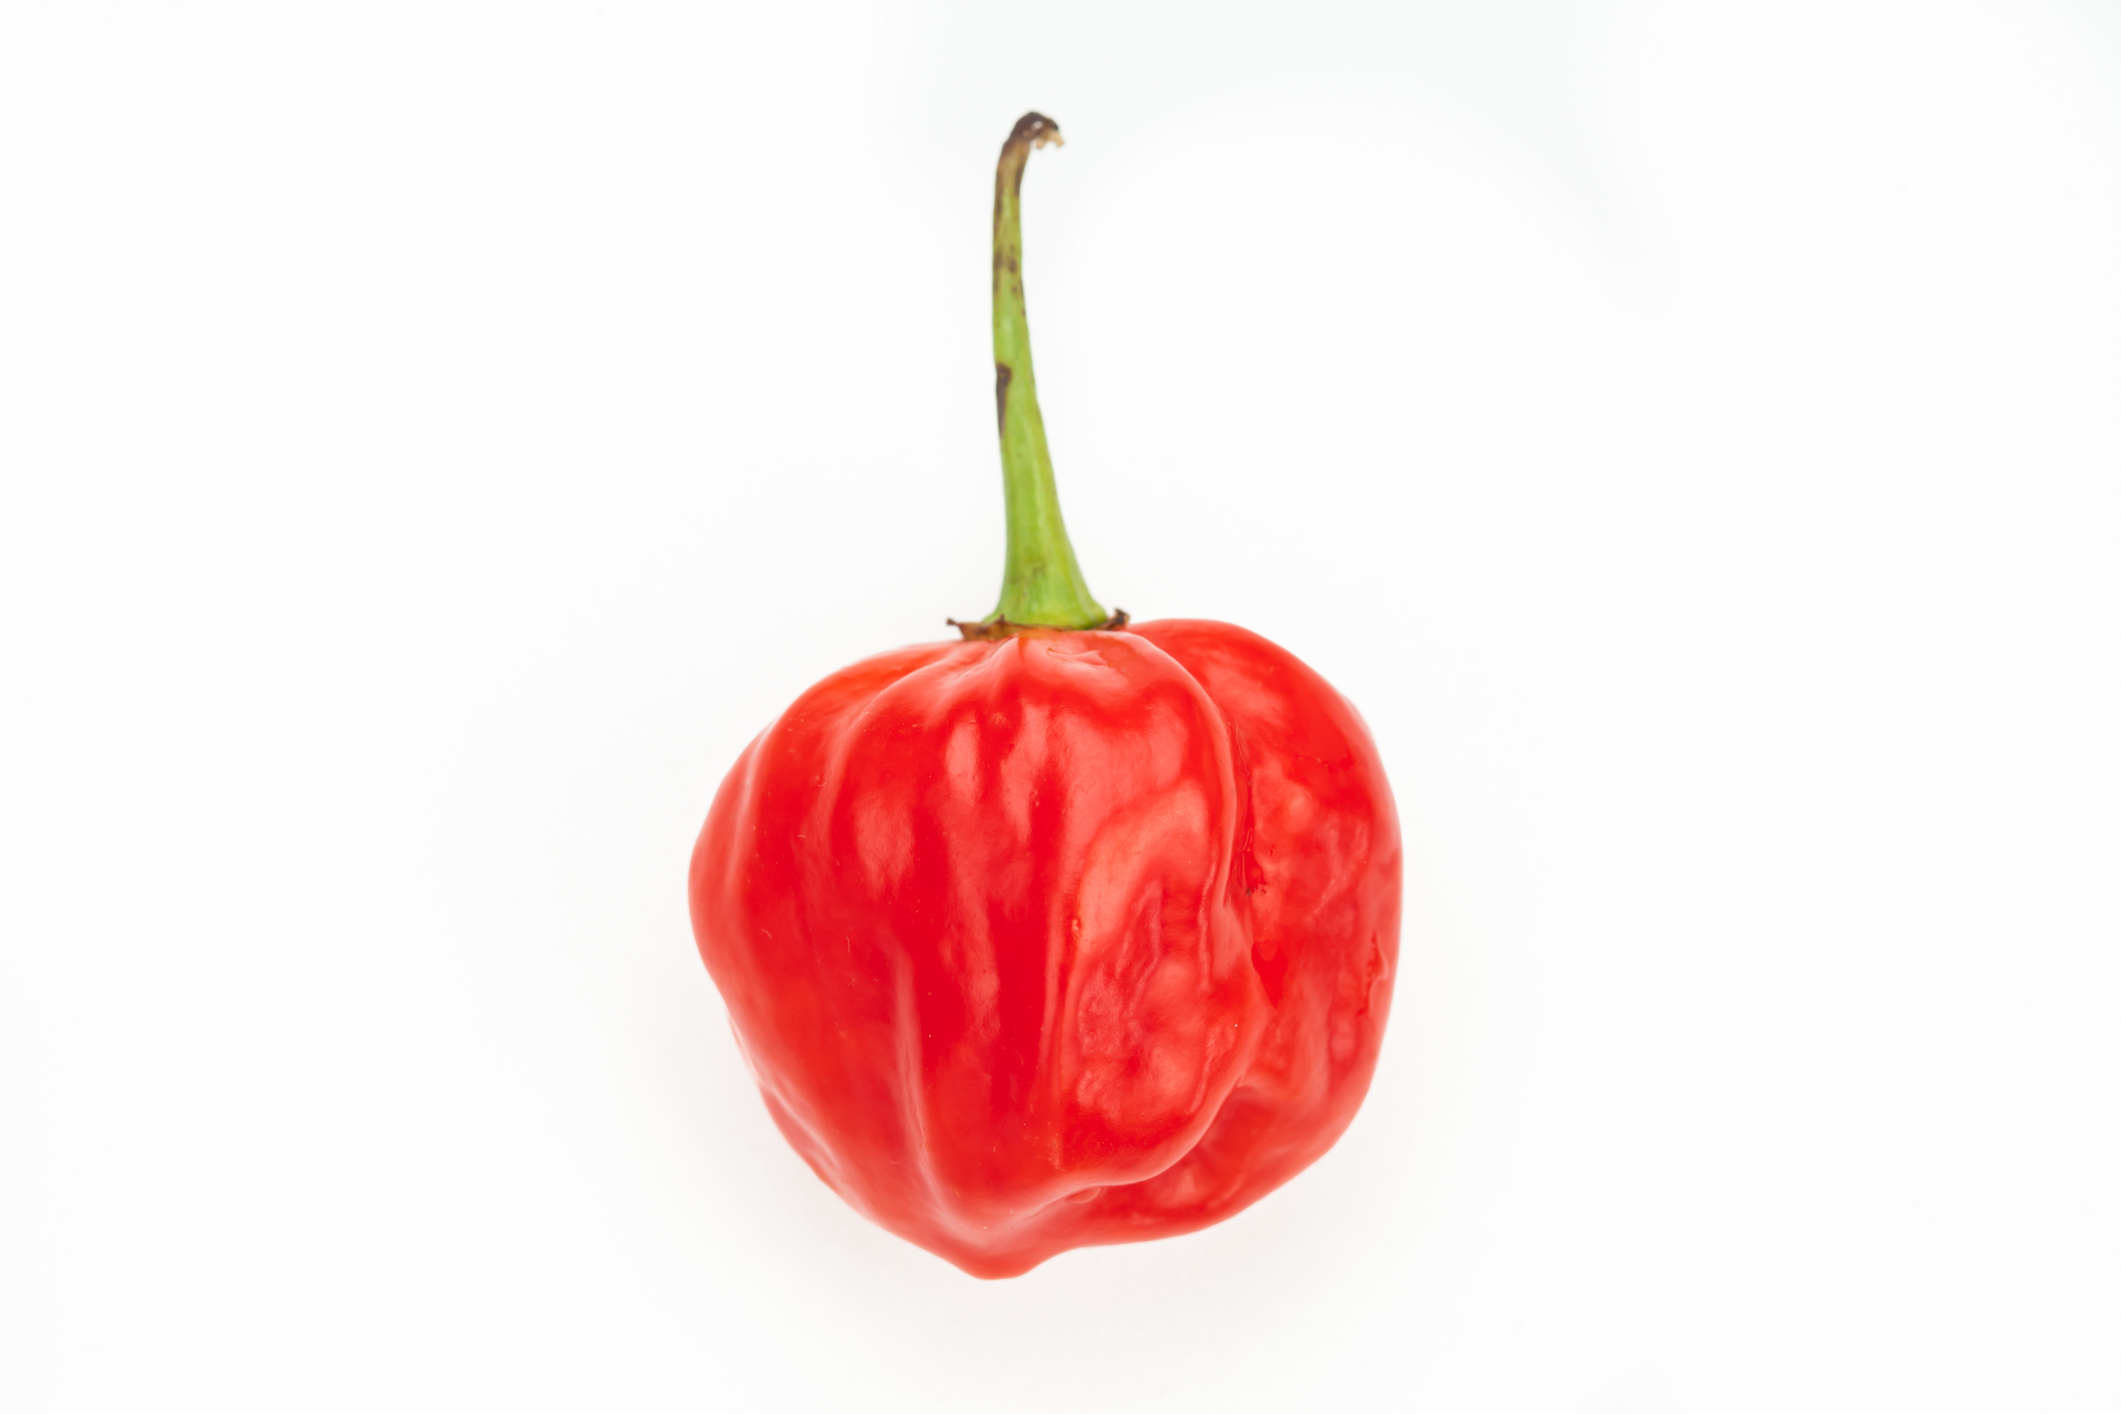 Scotch bonnet chilli pepper (Wavebreakmedia/Getty Images)